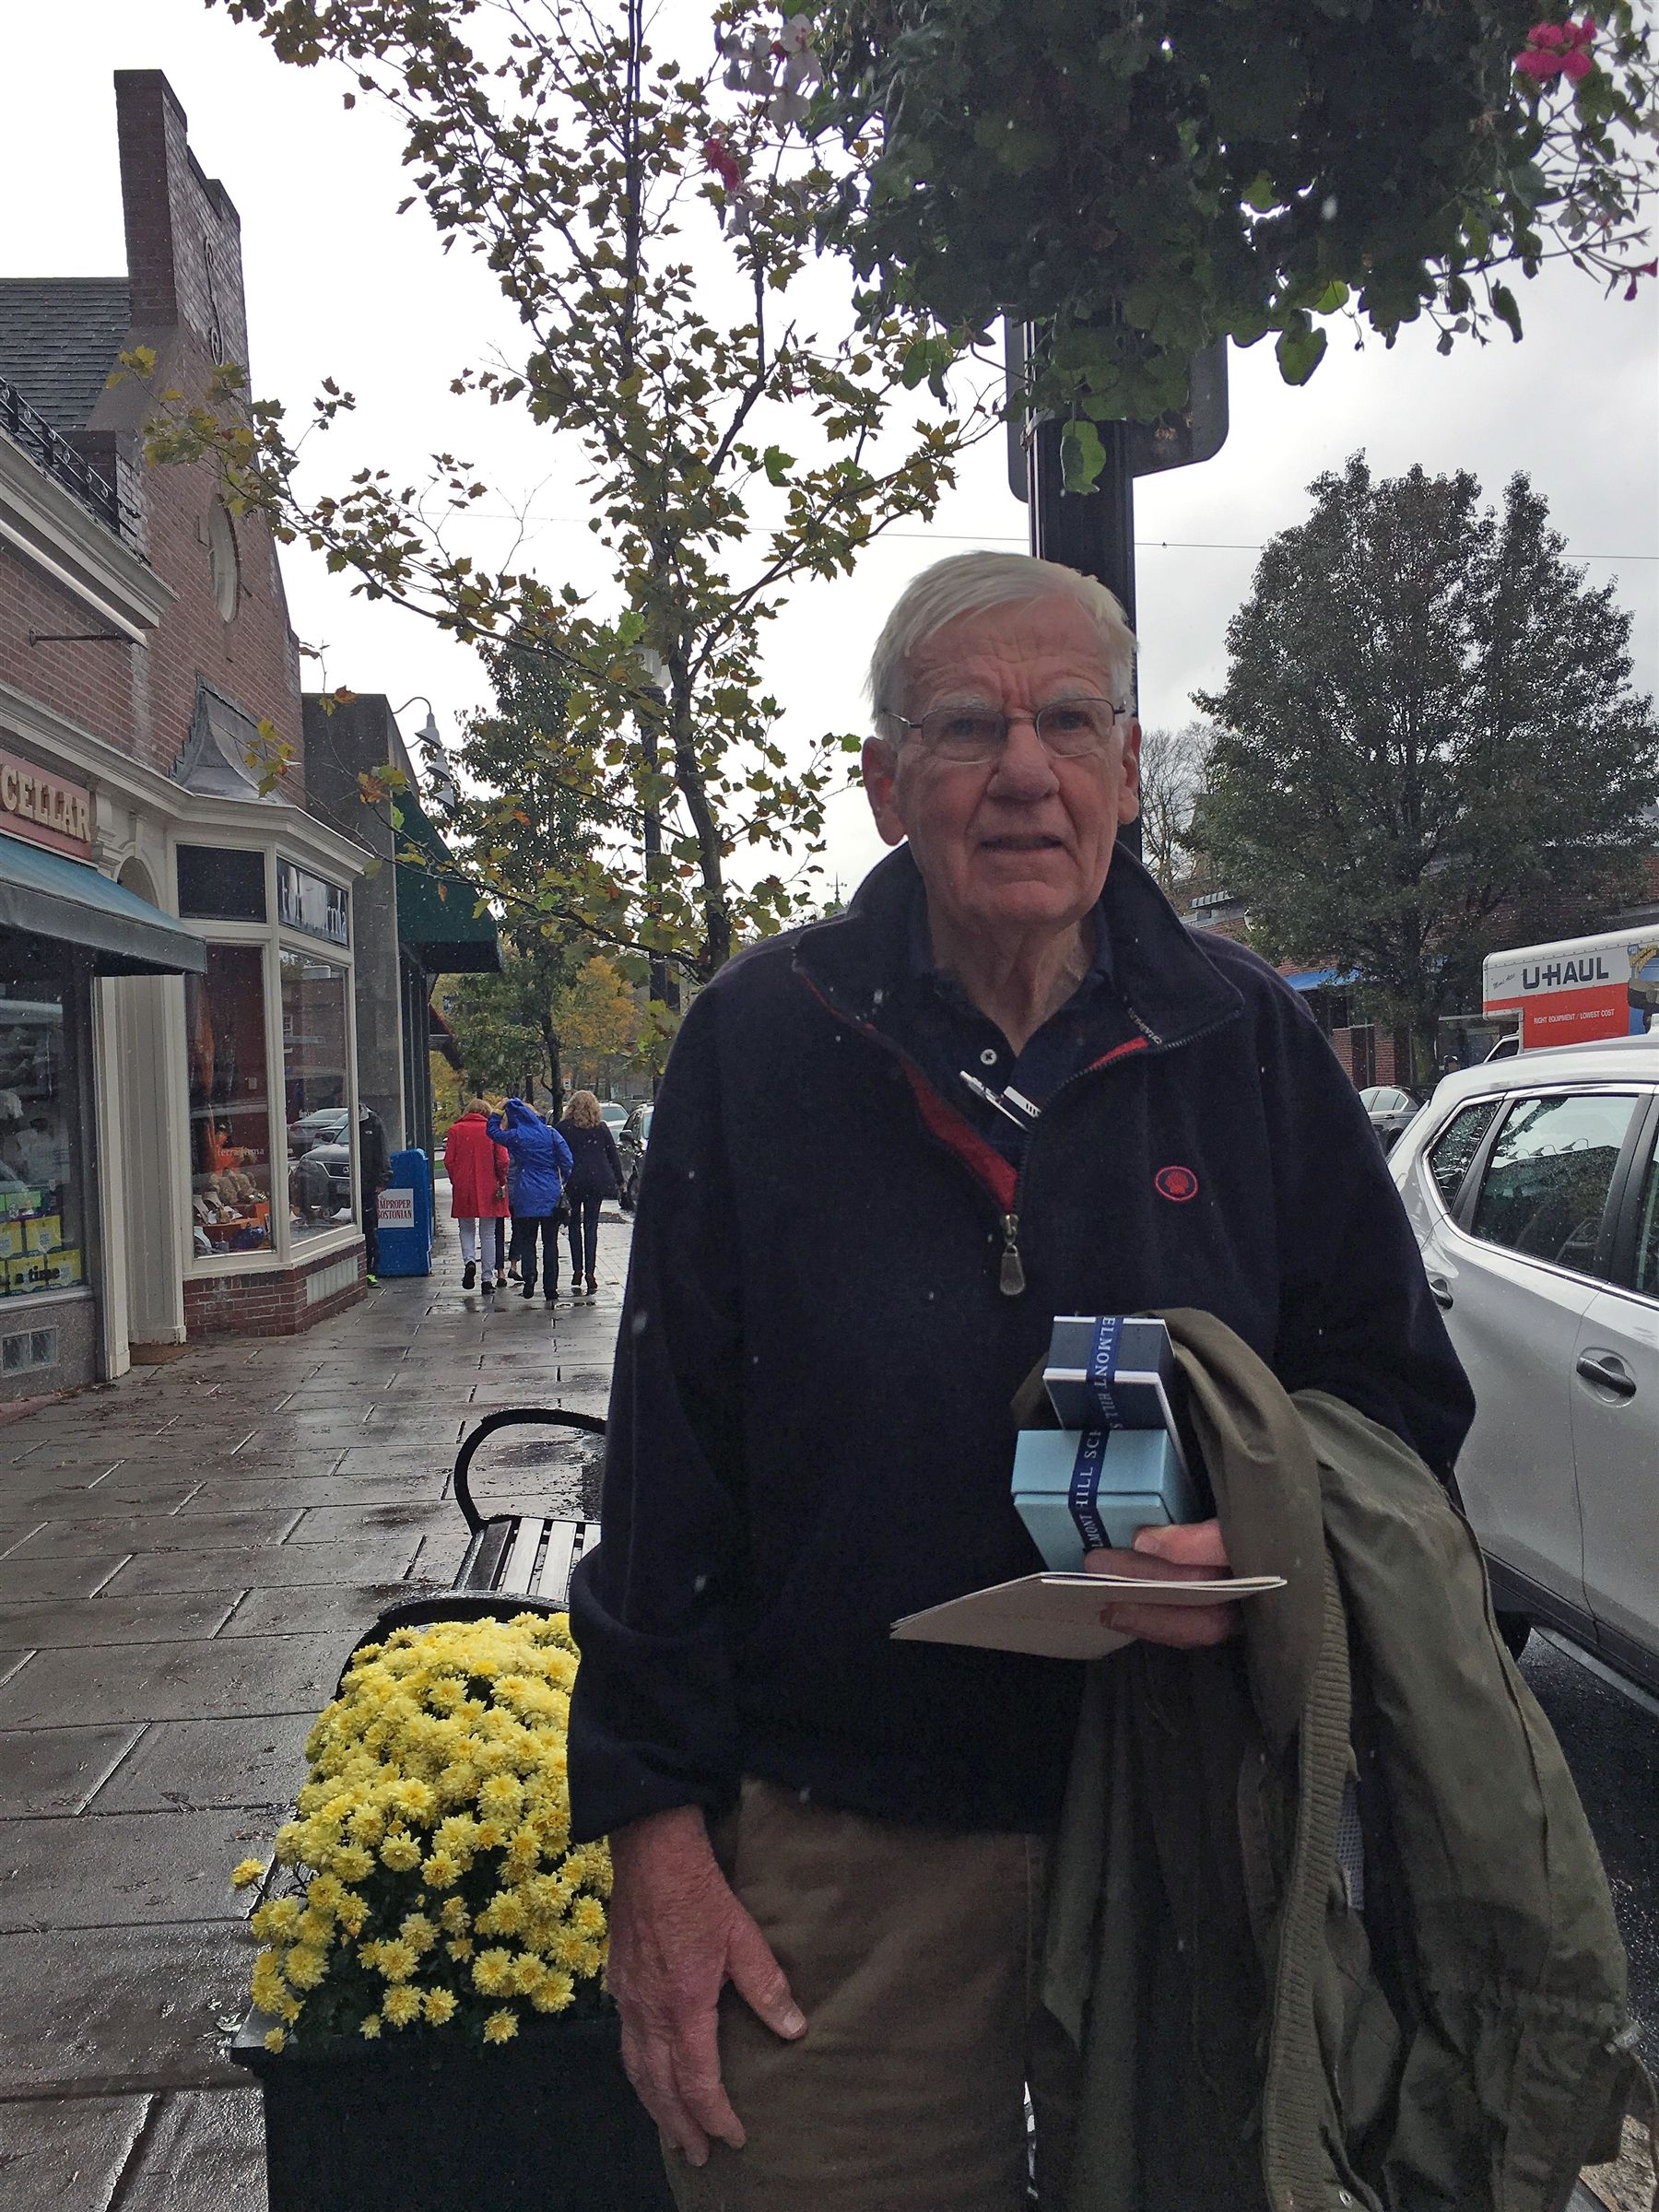 Tom Worthen '53 in Belmont on October 26, 2017